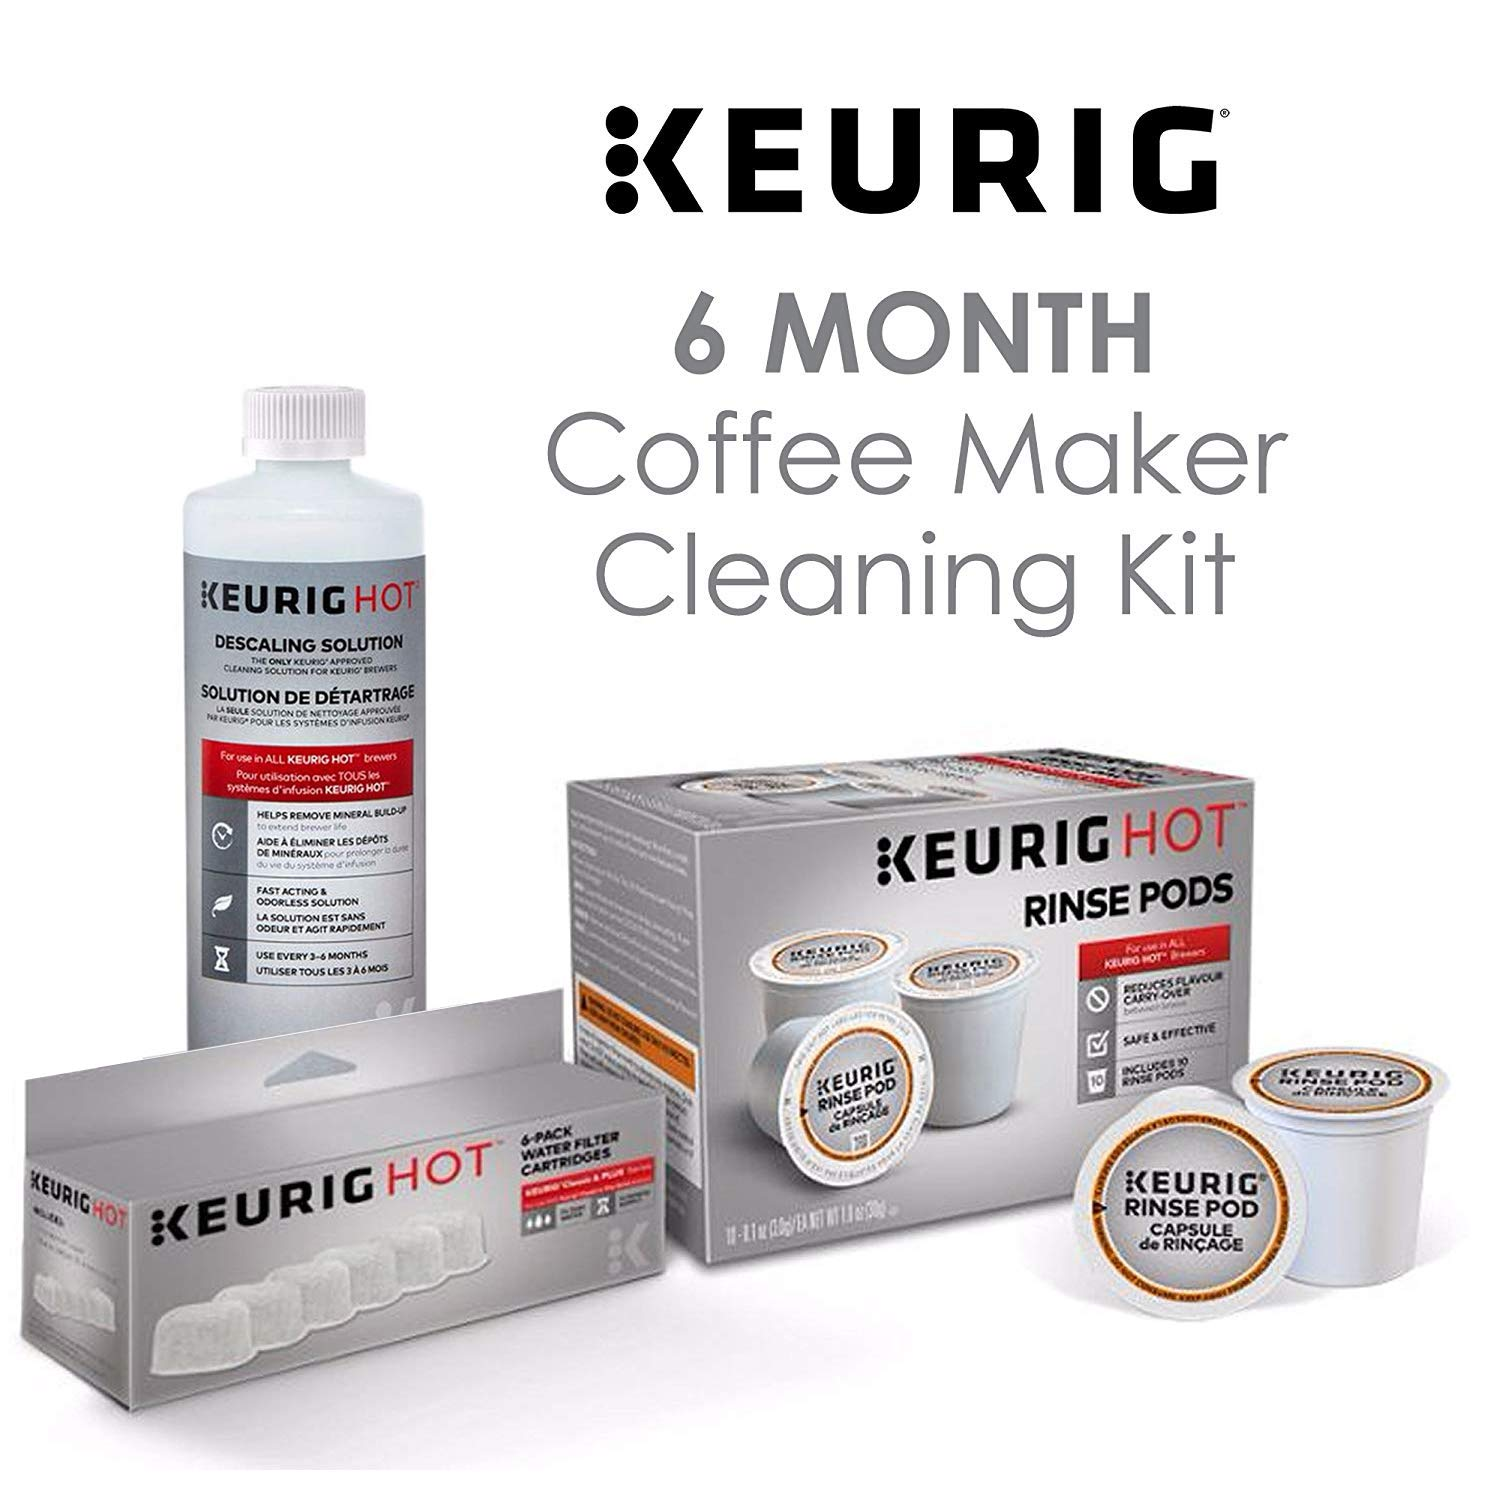 Keurig Maintenance Bundle Includes Replacement Water Filter Cartridges, Descaling Solution and Rinse Pods